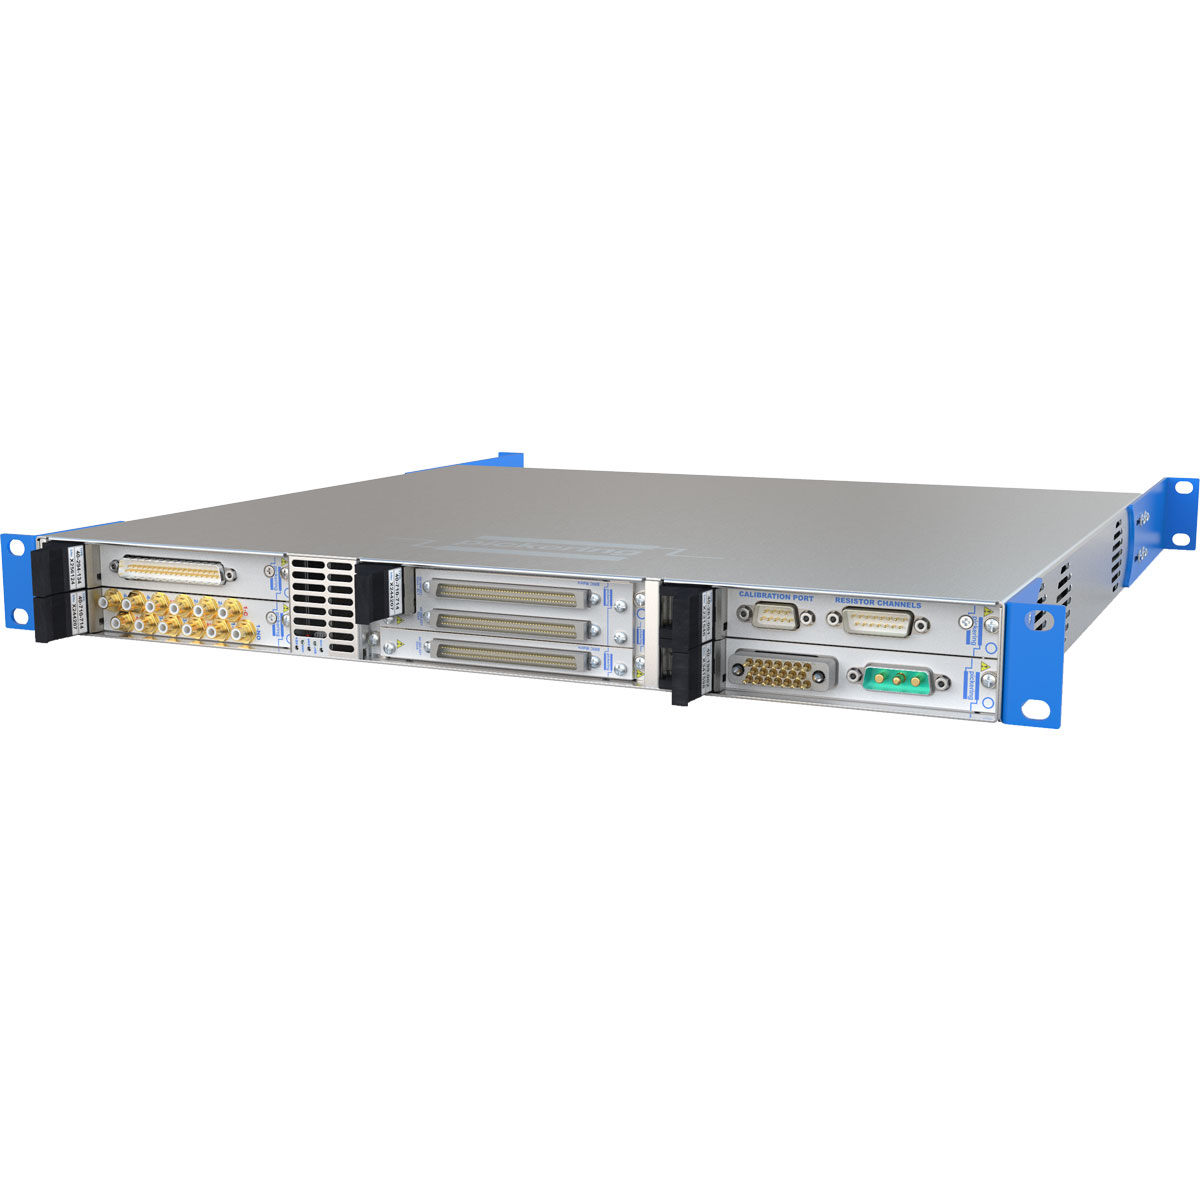 60-106 6-Slot USB/LXI Chassis